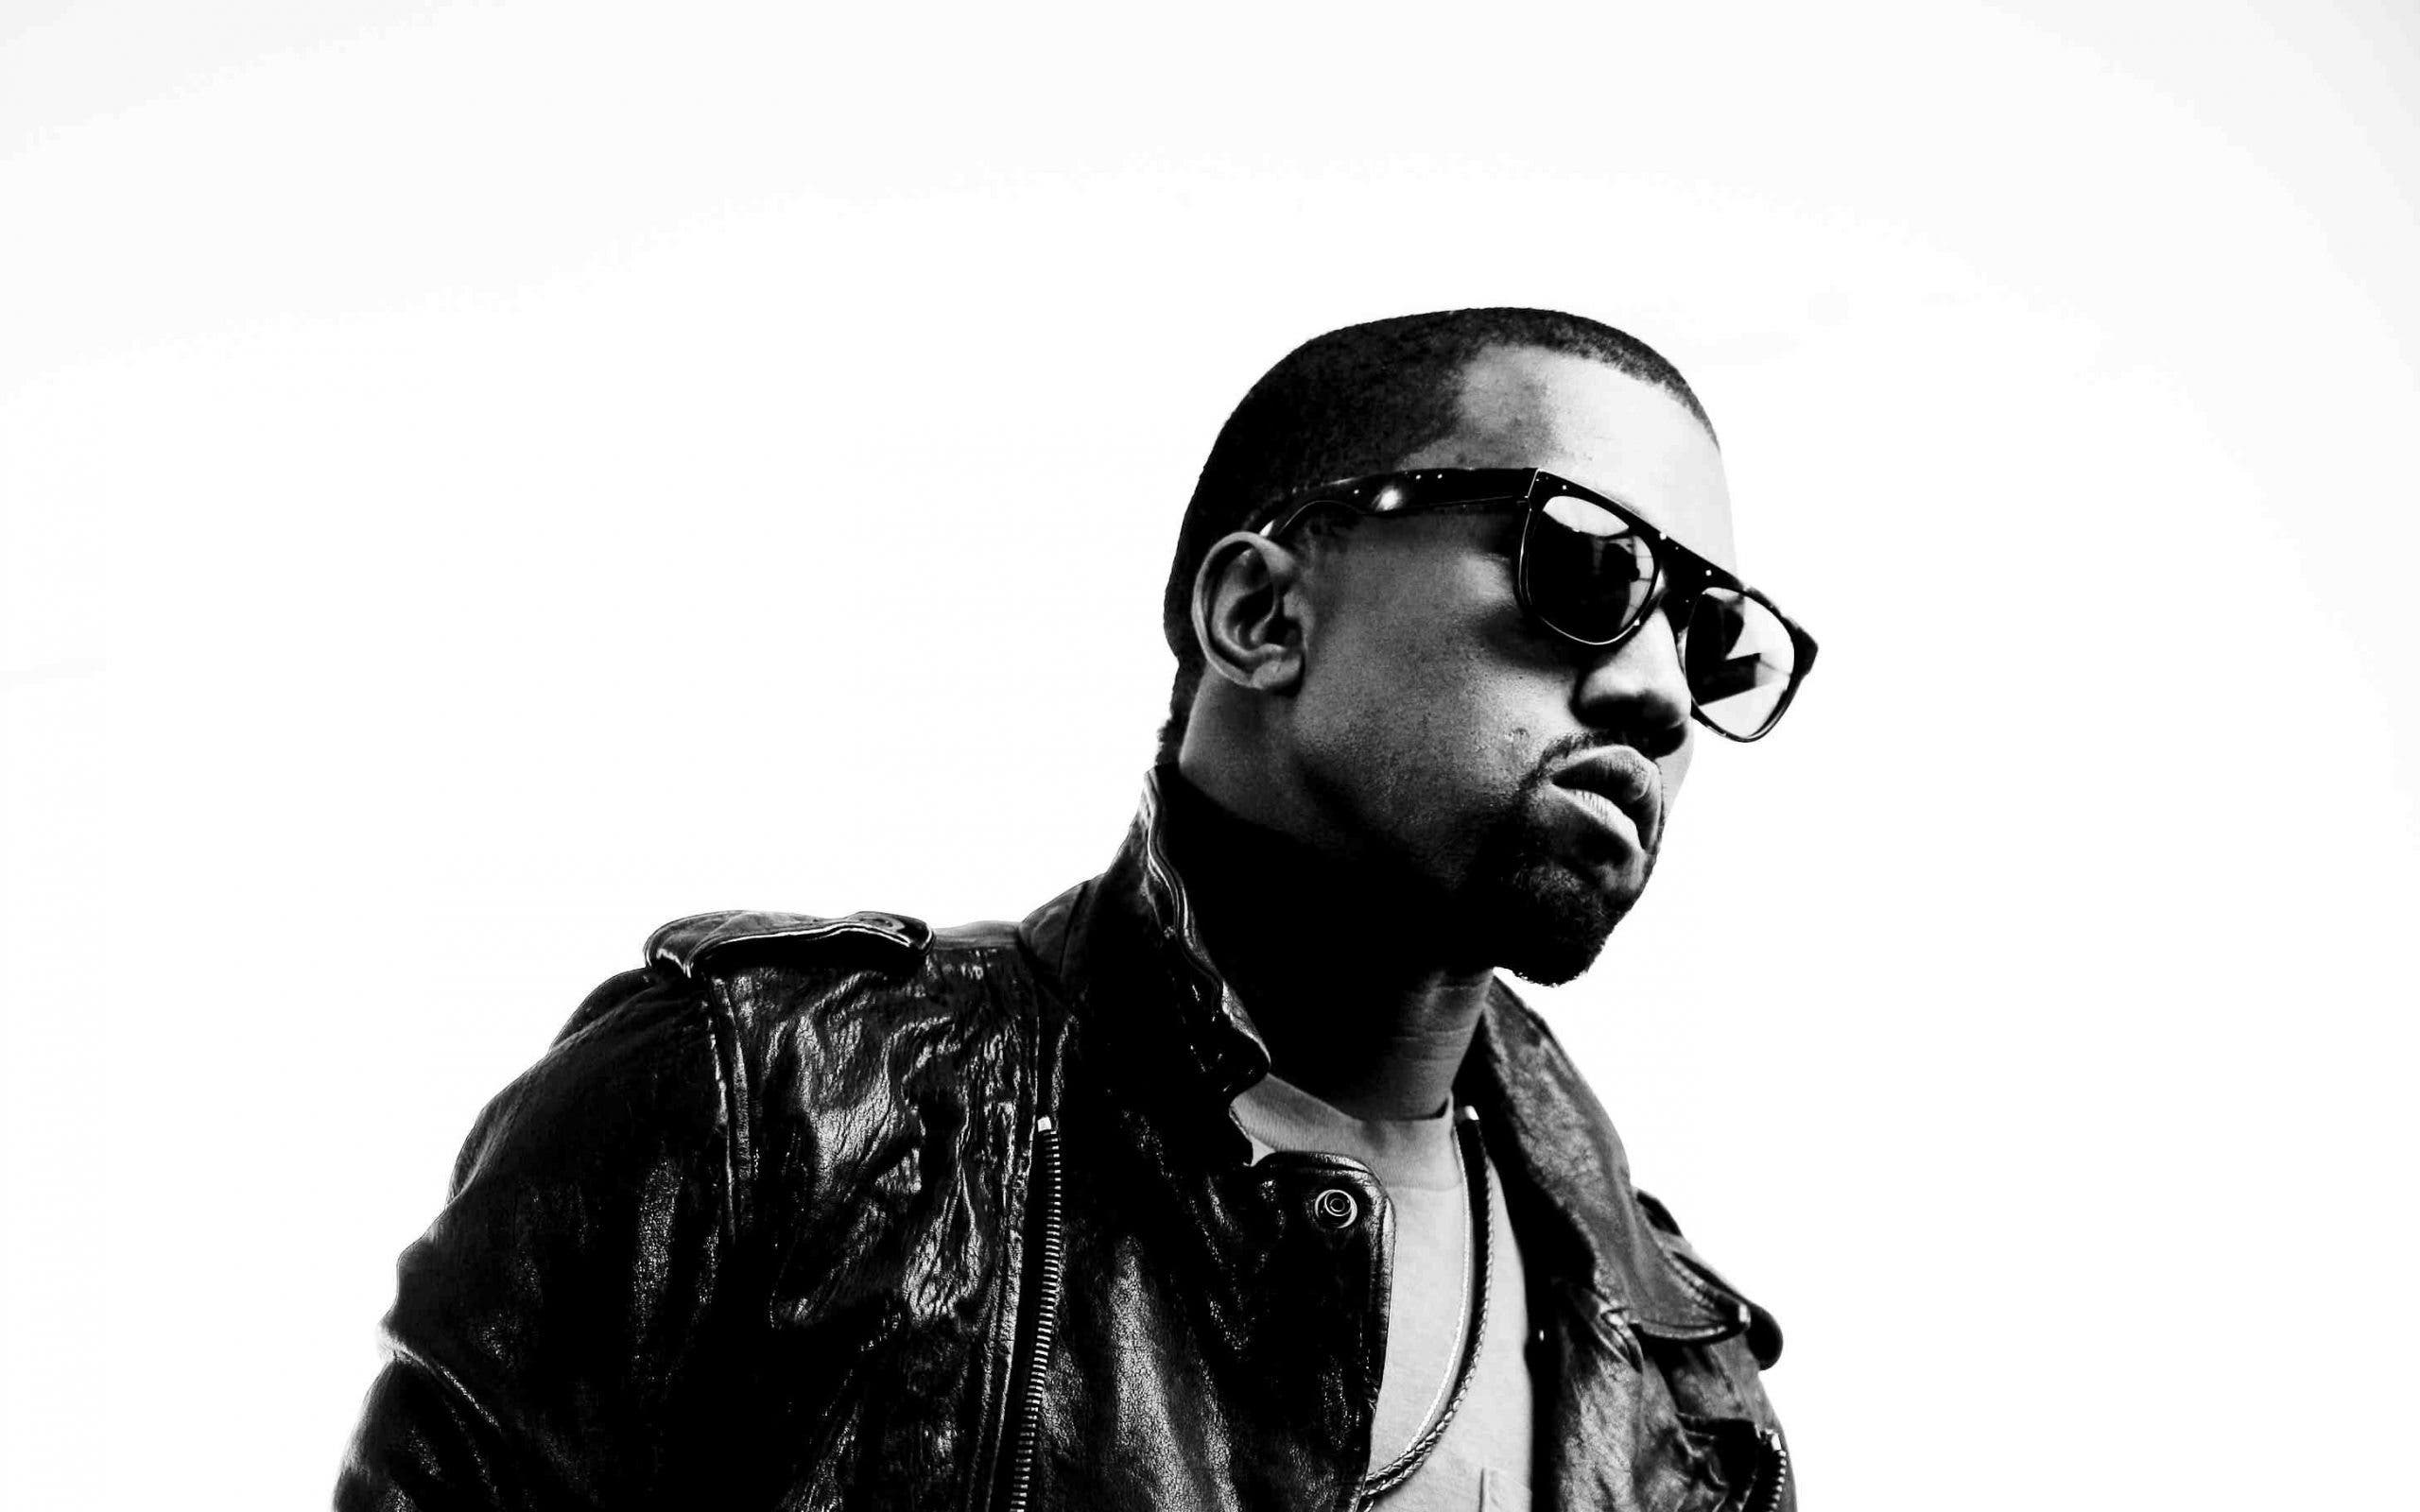 82,000 People Have a Message for Kanye West…